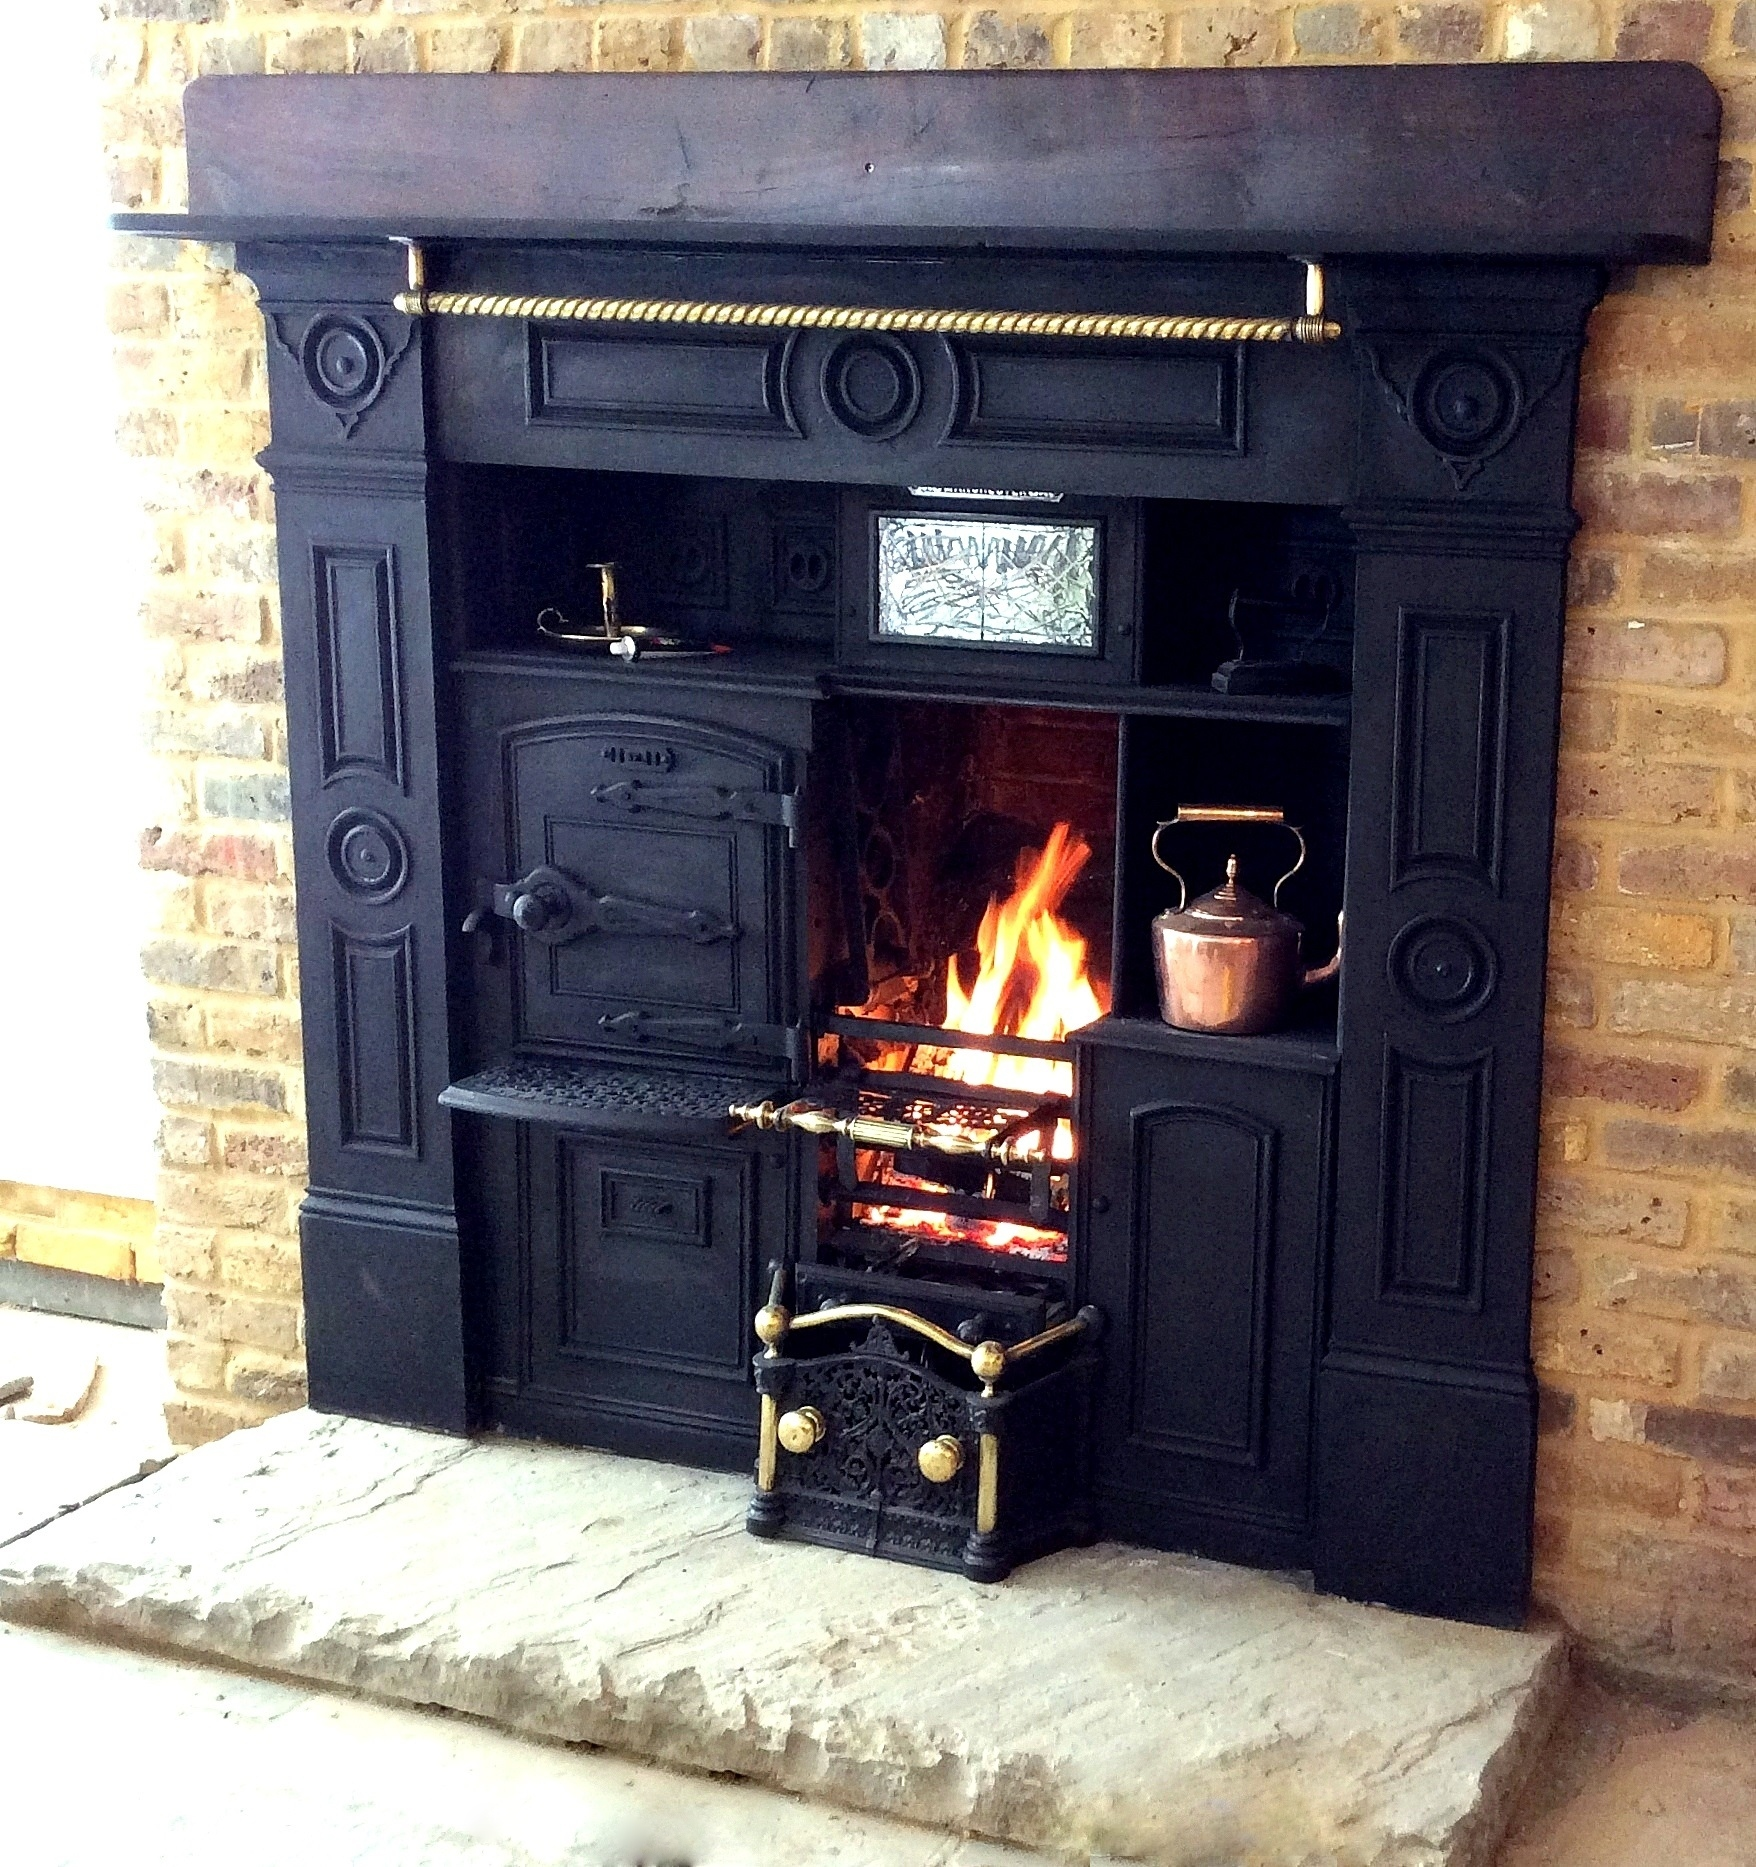 cast iron kitchen stove small space tables for antique fireplaces ranges cheshire plus wood burning multi fuel range supplied fitted city house in london